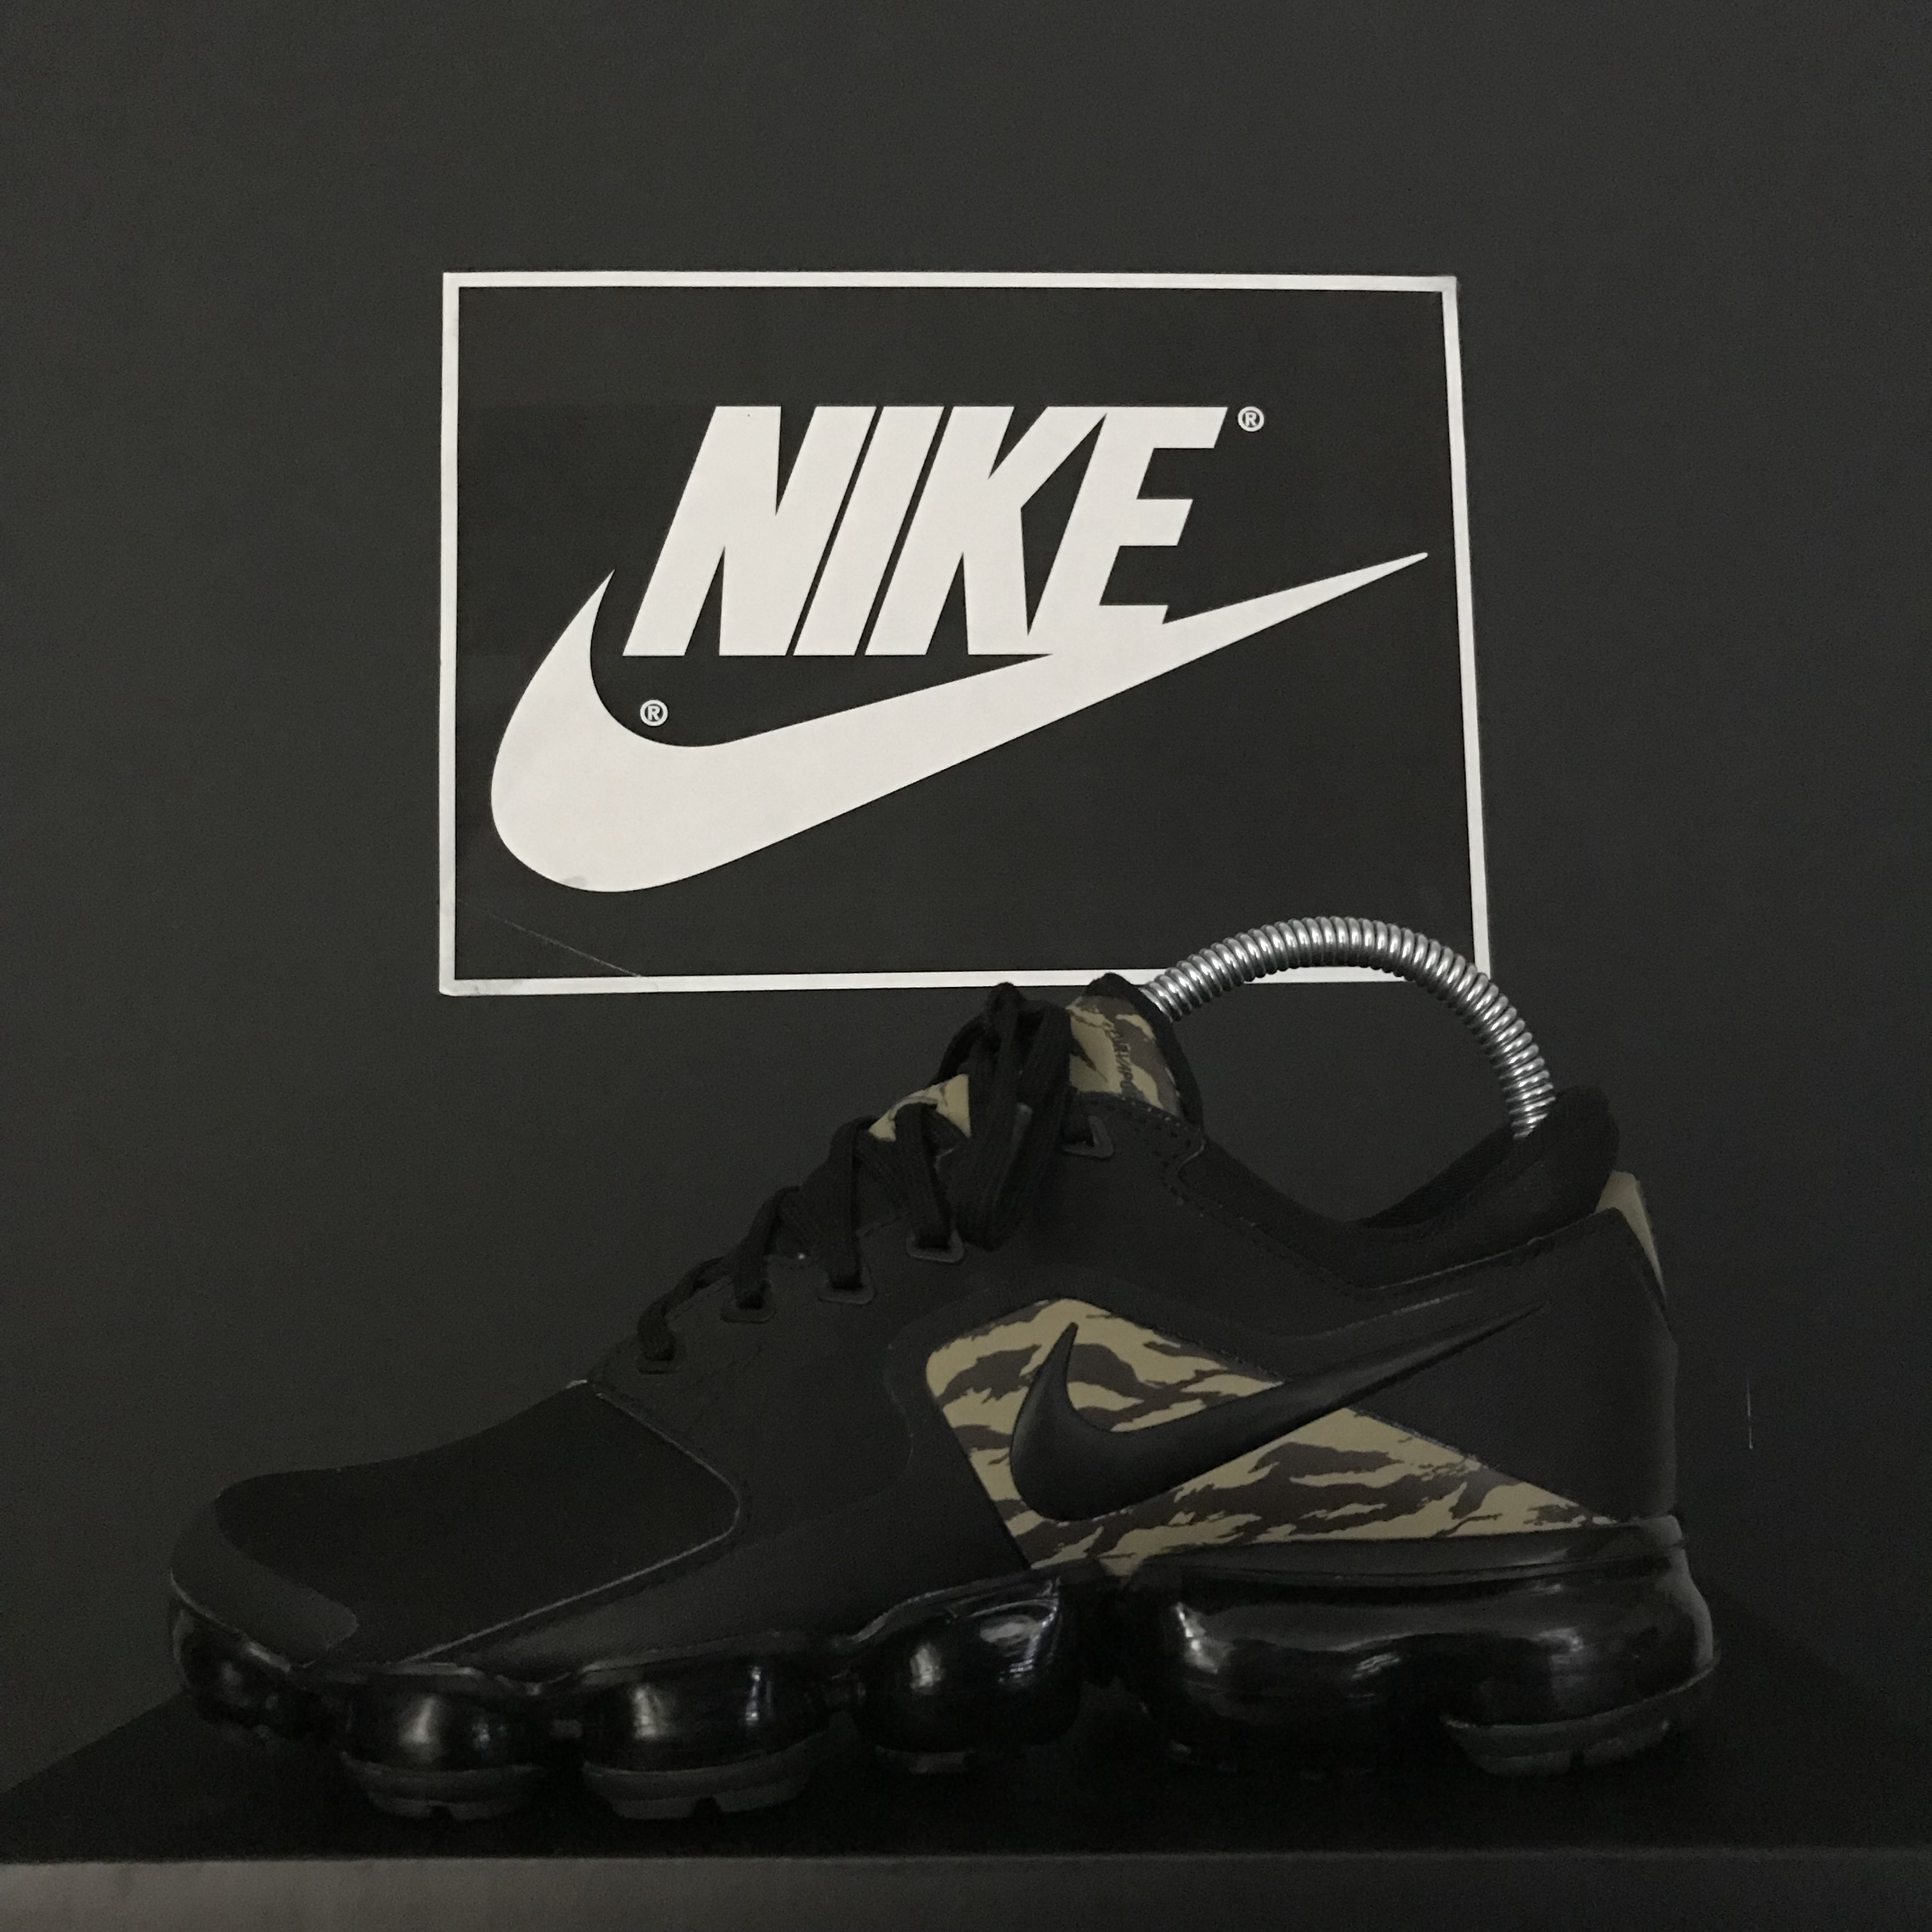 Nike Air Vapormax Size: 5 UK Colourway